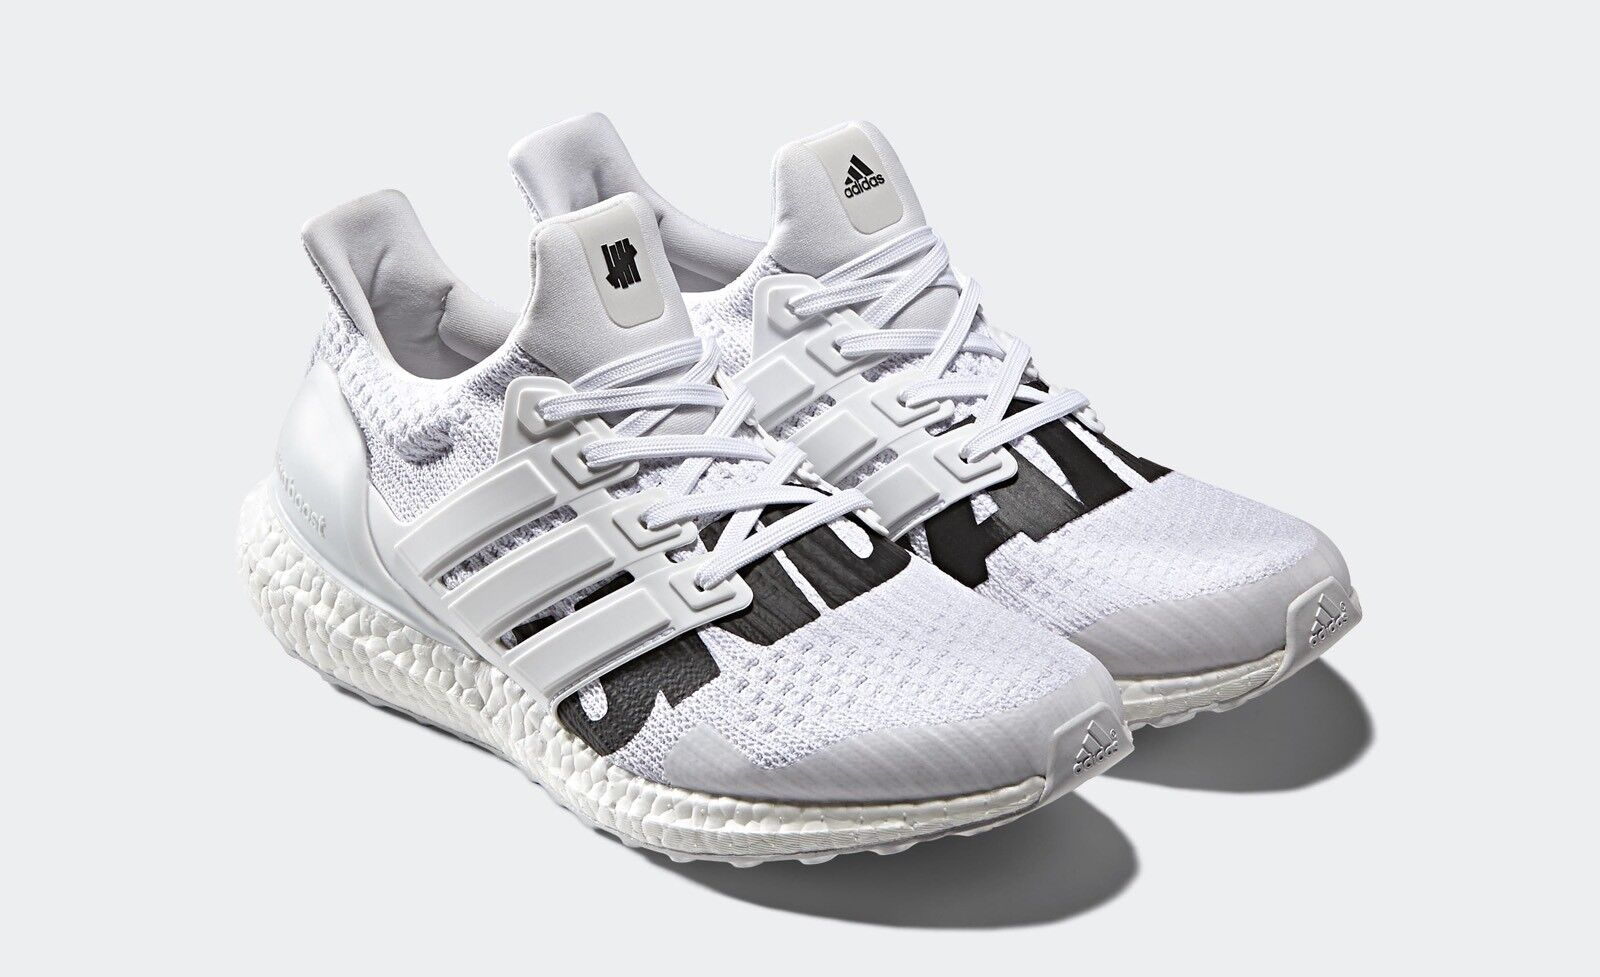 ADIDAS X UNDEFEATED Ultraboost 4.0 White Men's Size 4.5 (wmns Size 6) Limited